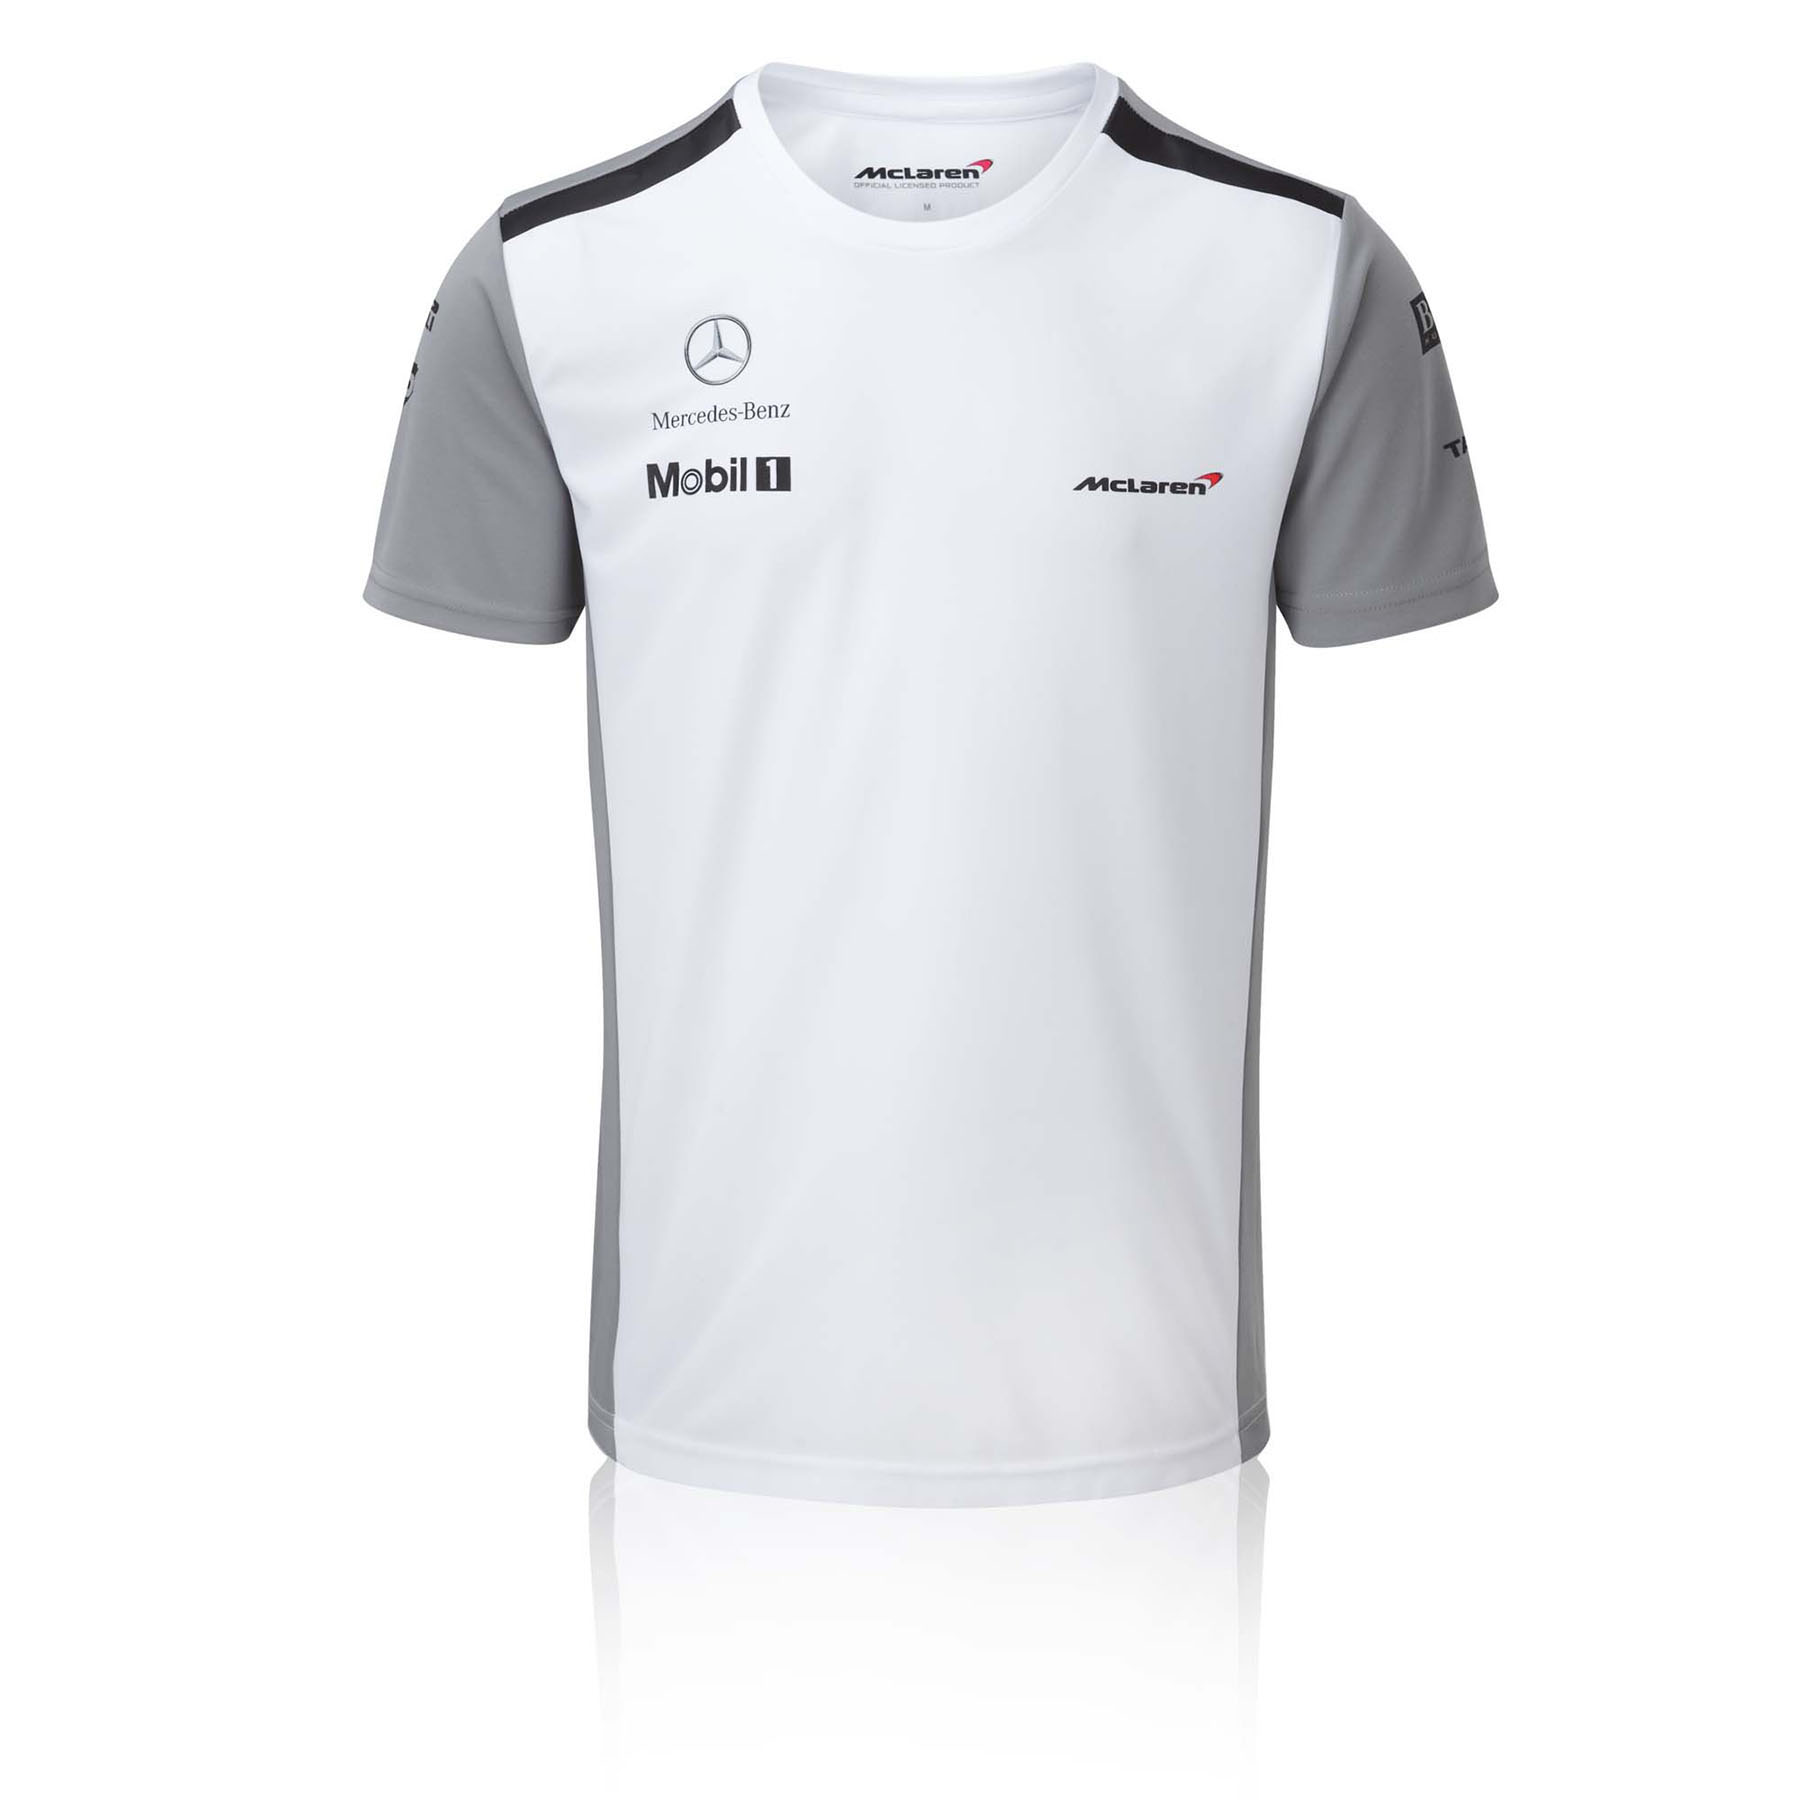 Team McLaren Technical Team T-Shirt - Kids